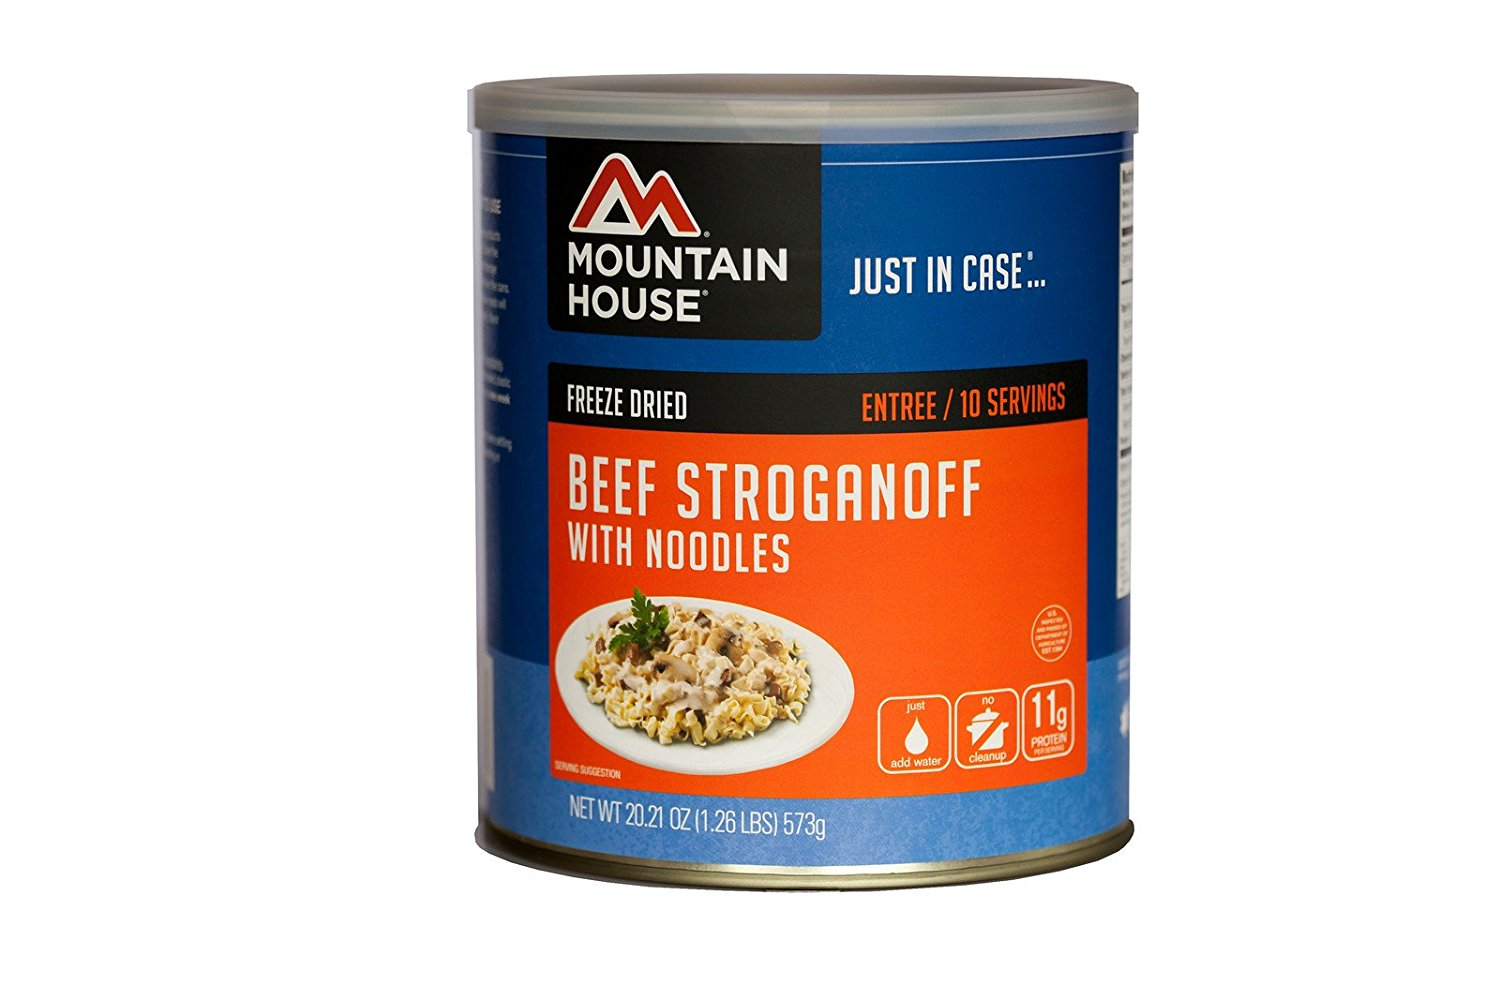 Beef Stroganoff with Noodles #10 CAN, ship from USA,Brand Mountain House by